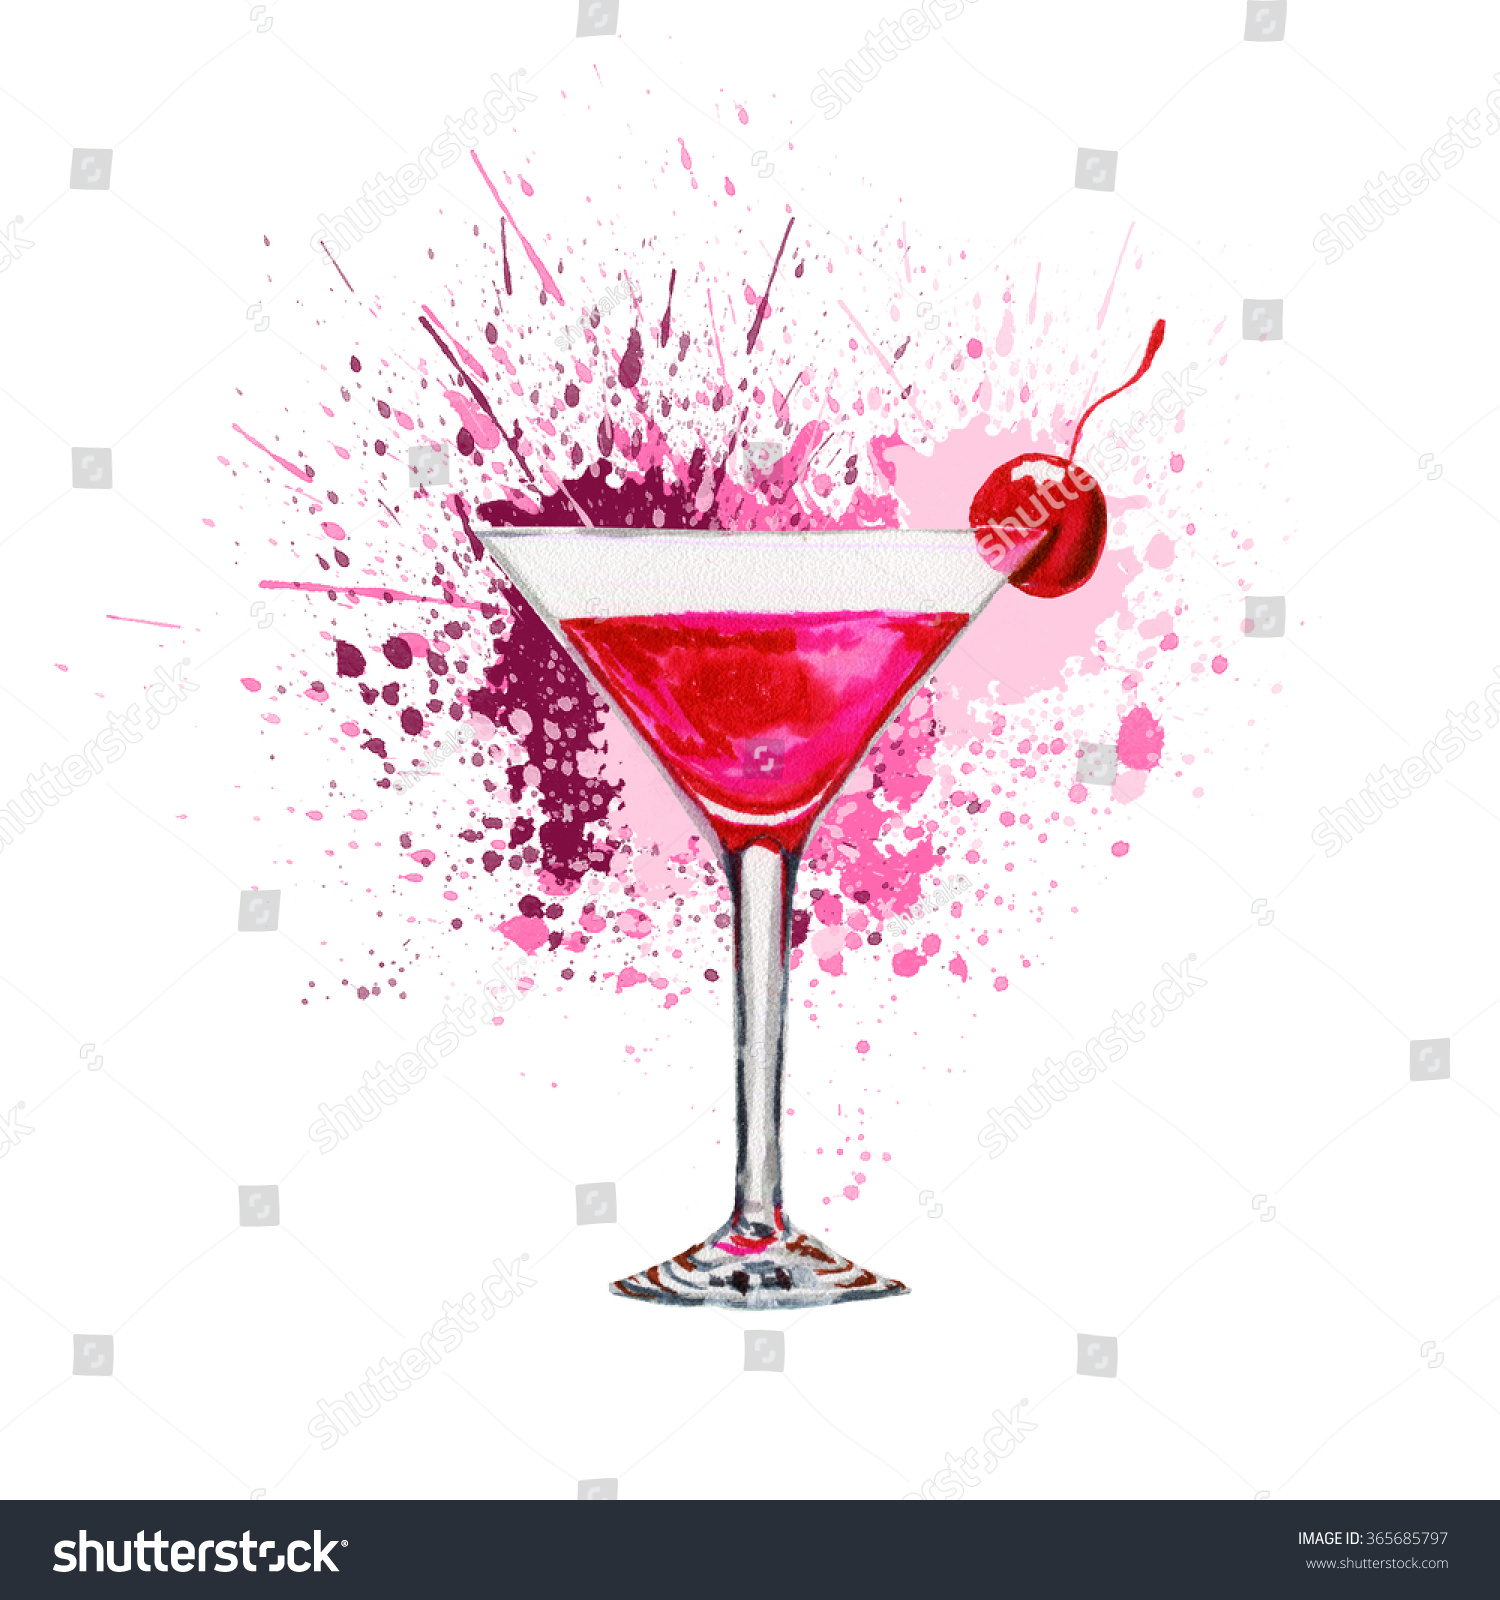 pink drink wallpapers: Pink Cocktail Hand Drawn Splash Watercolor Stock